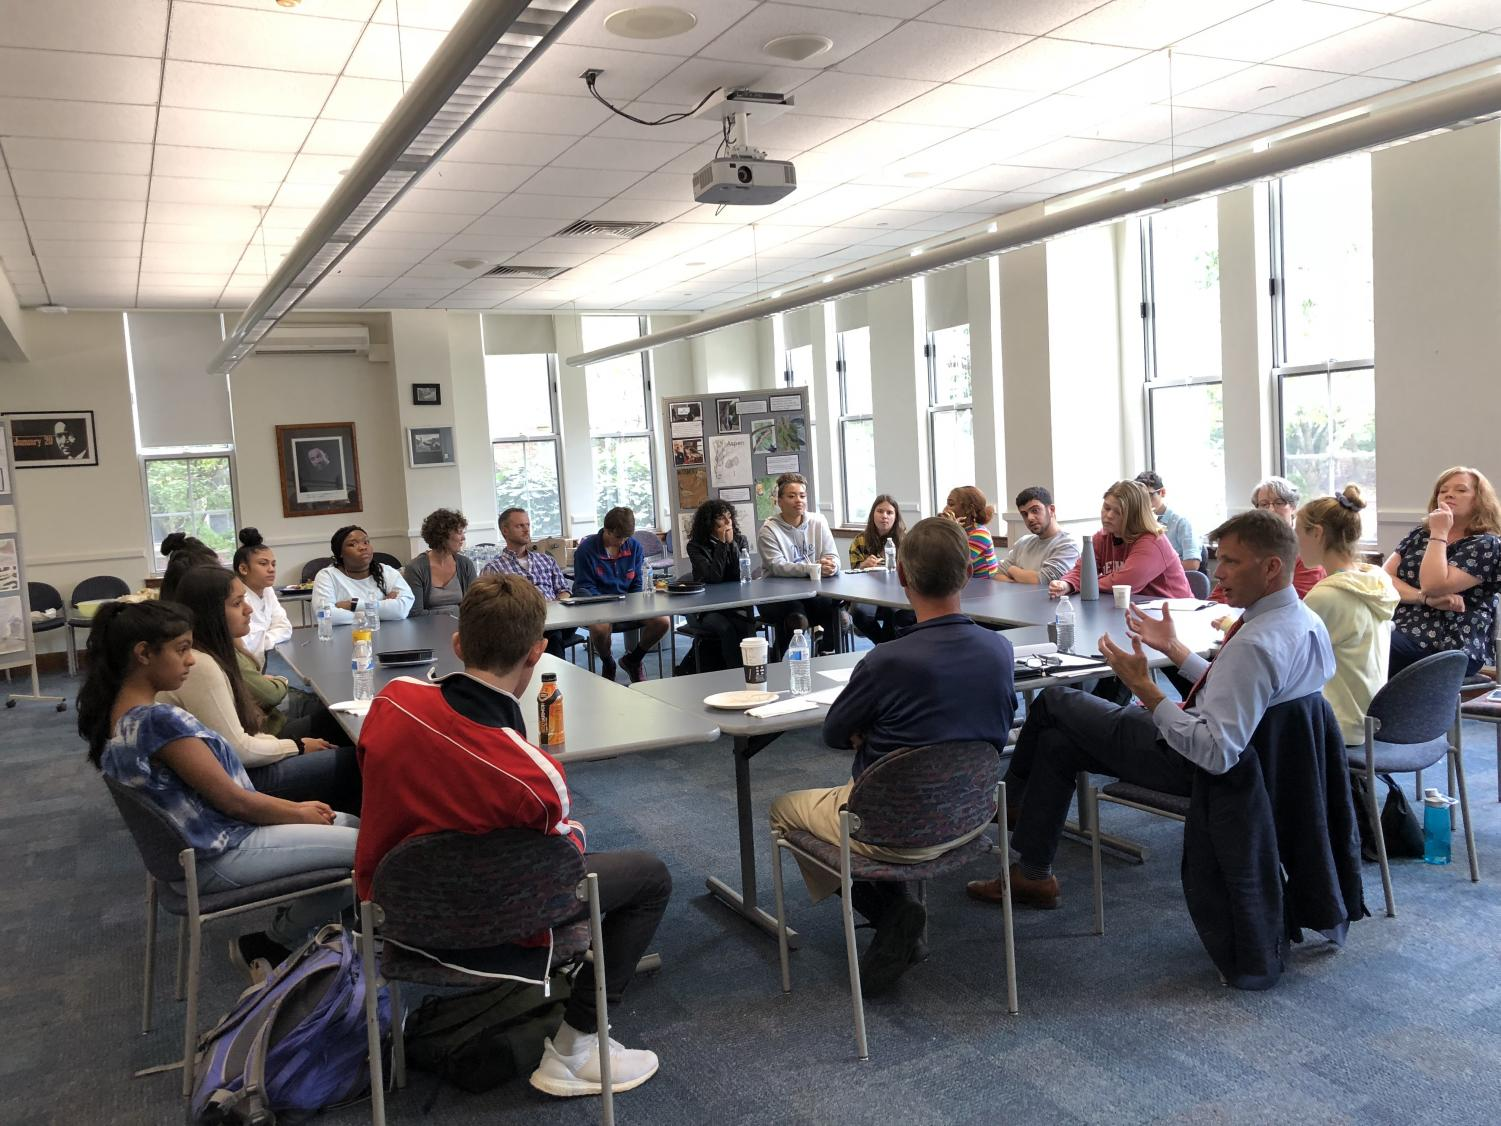 Ted Dintersmith and students hold a roundtable discussion surrounding topics like college and new innovations in education. Dintersmith, author and innovator, visited the high school on Sept. 20.